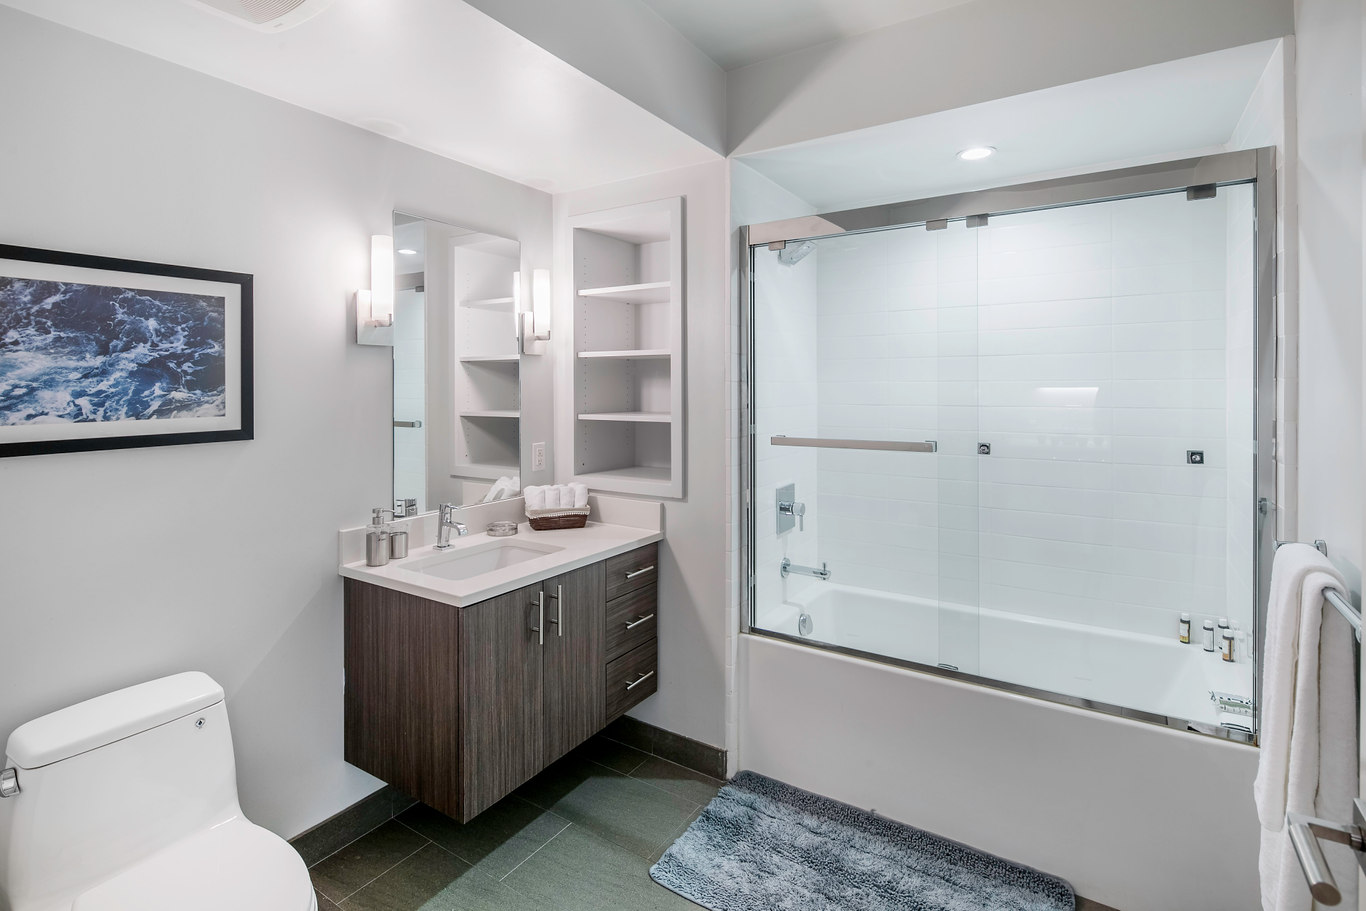 Bathroom at Ritch Street Apartments